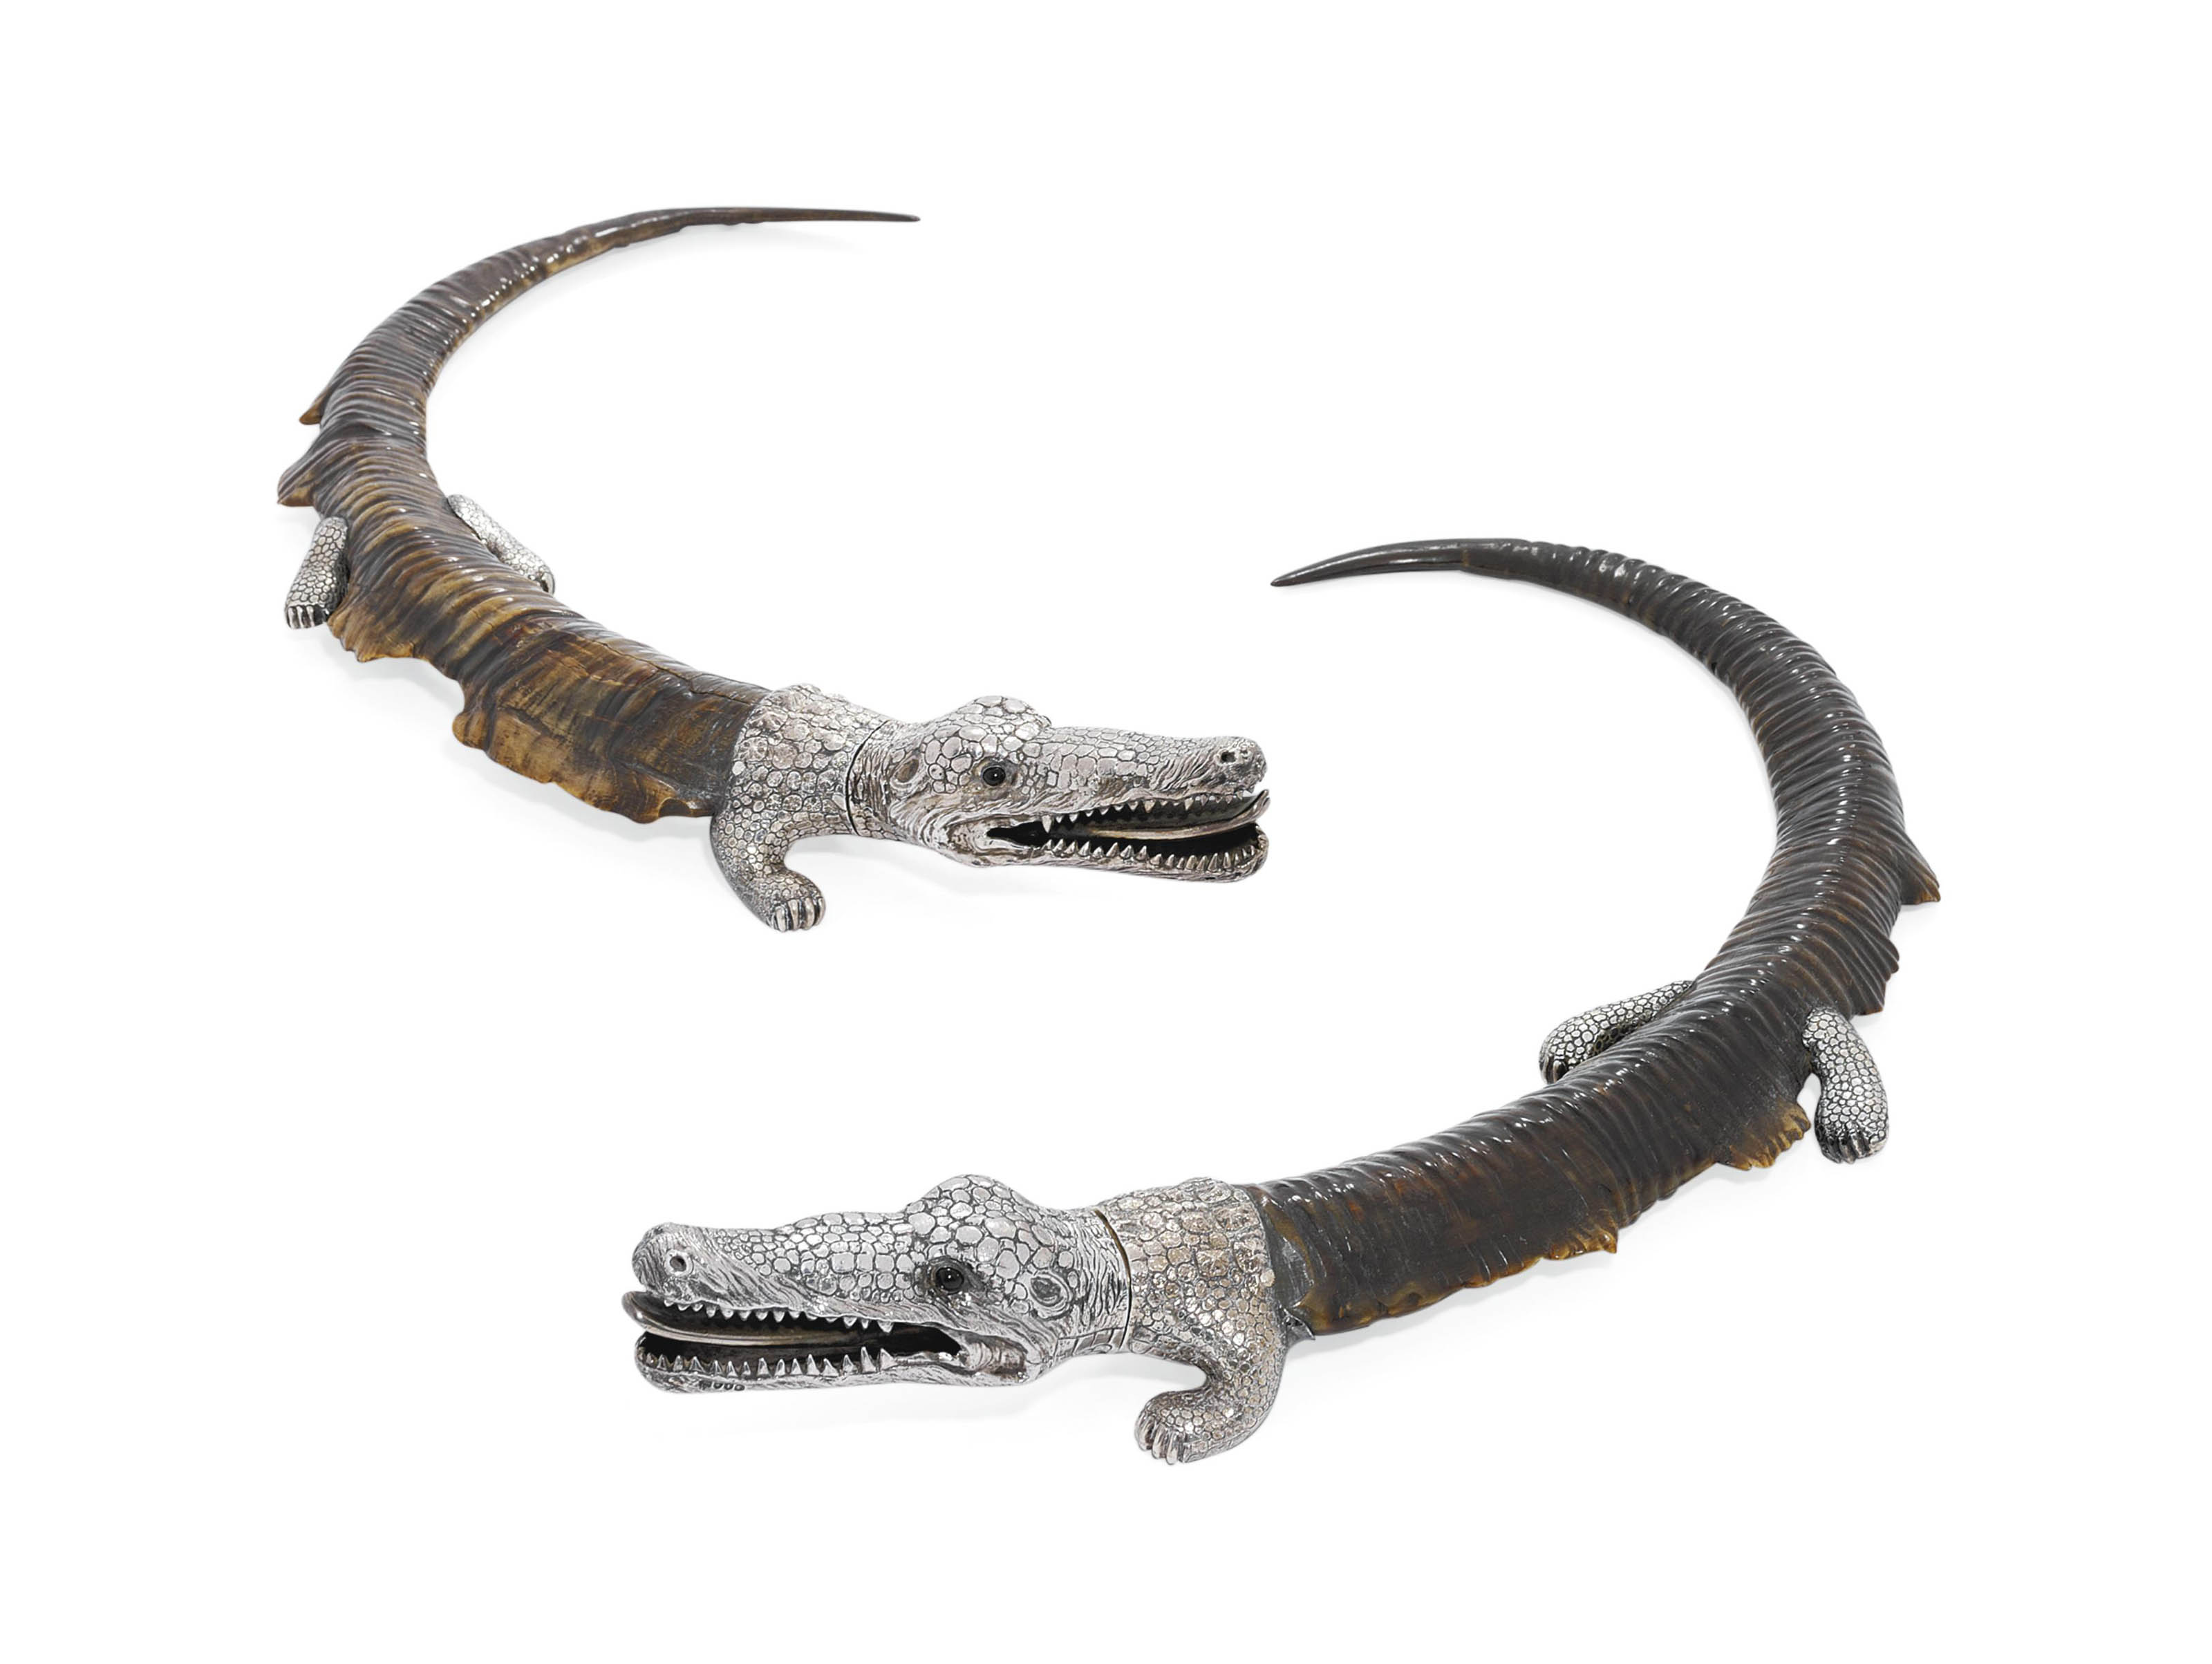 A PAIR OF VICTORIAN SILVER-MOUNTED IBEX-HORN SMOKER'S COMPANIONS